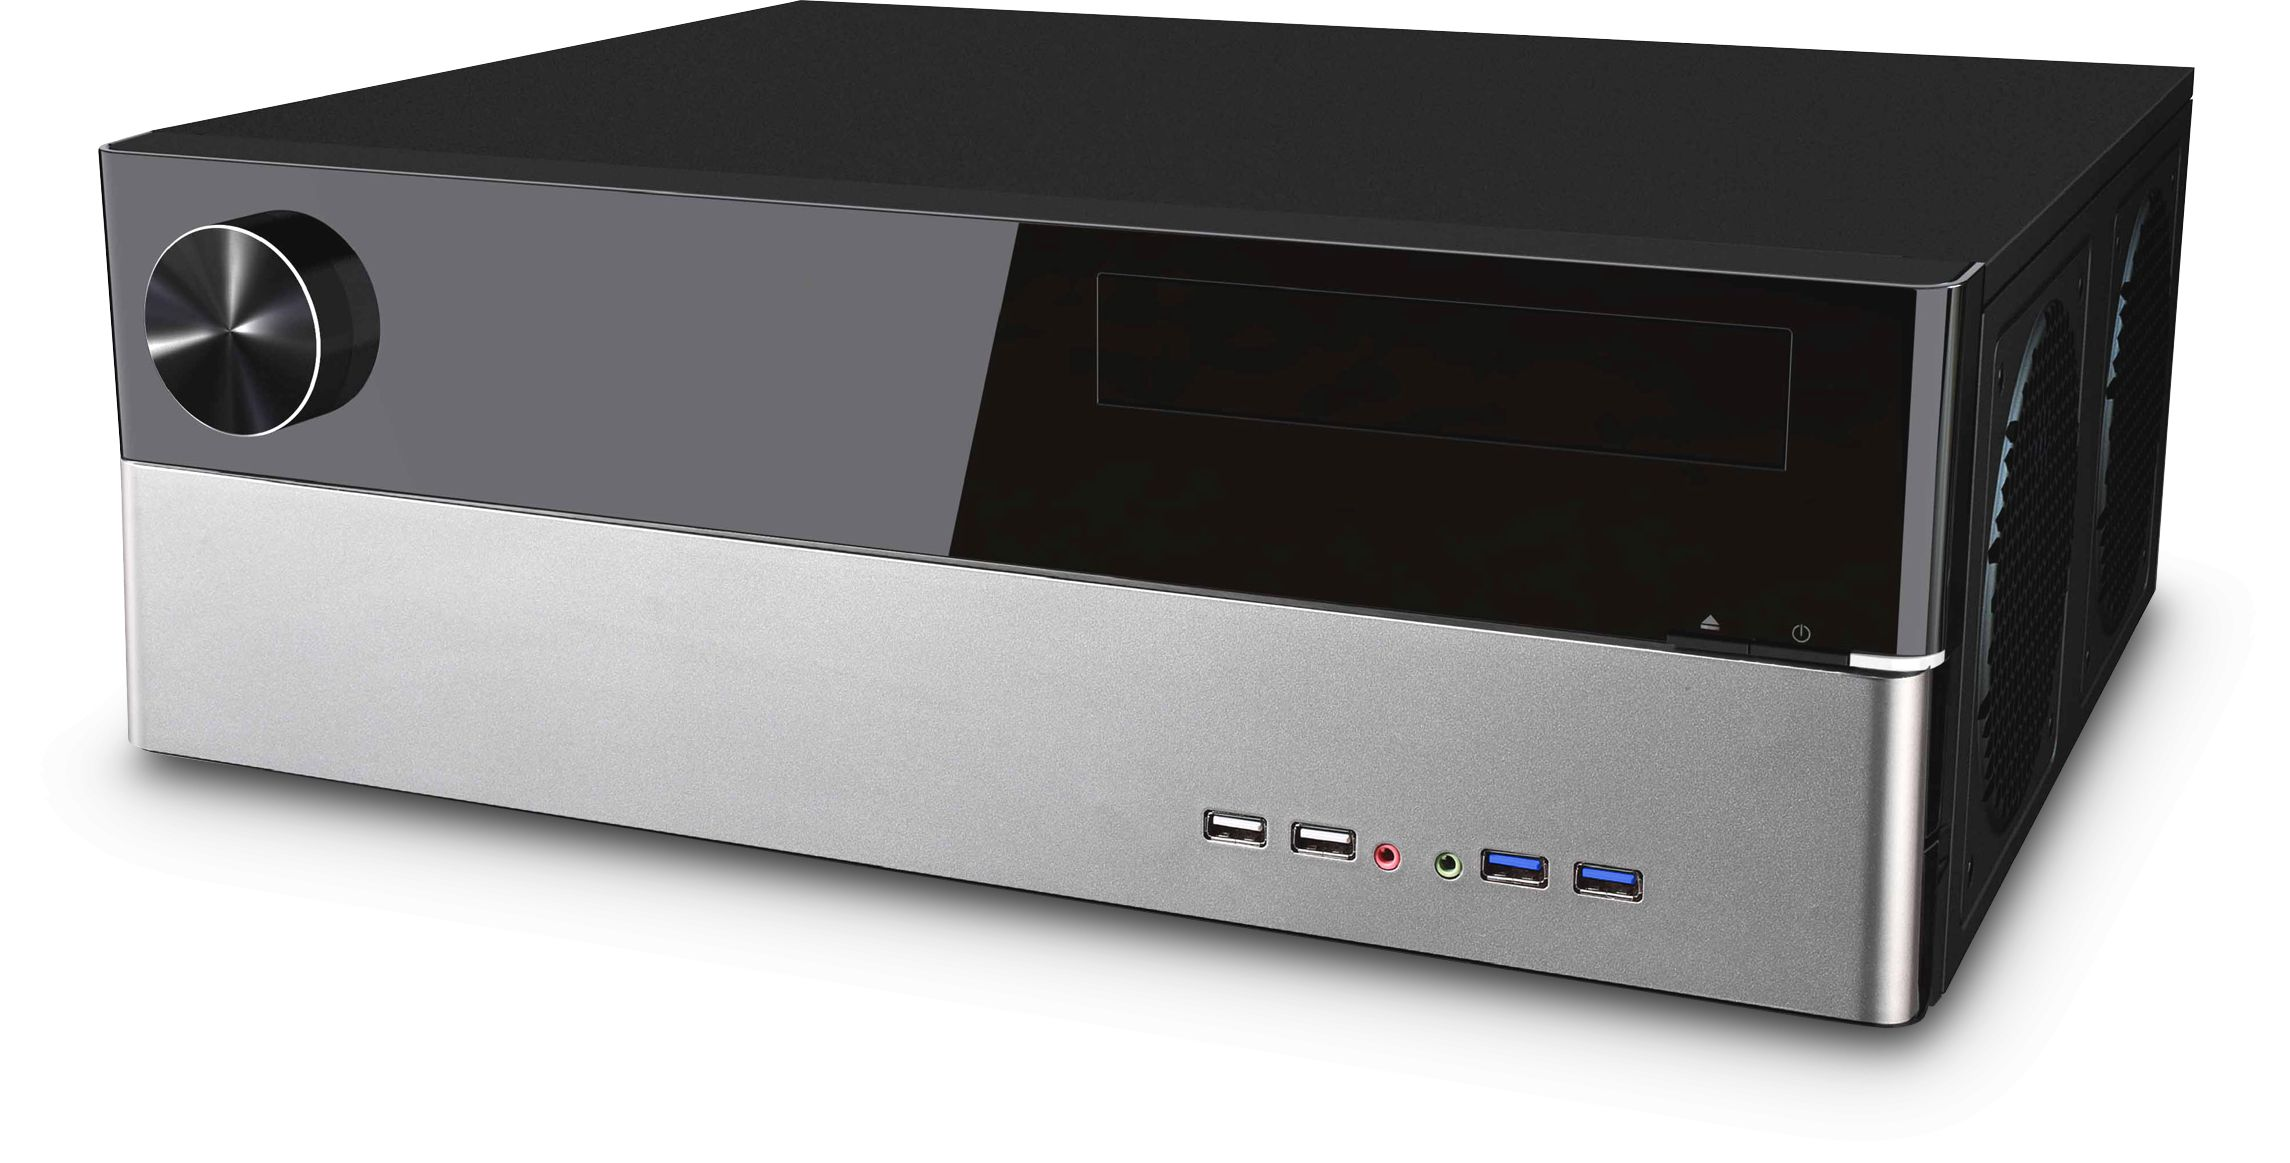 Jonsbo G3 Home Theater PC Chassis